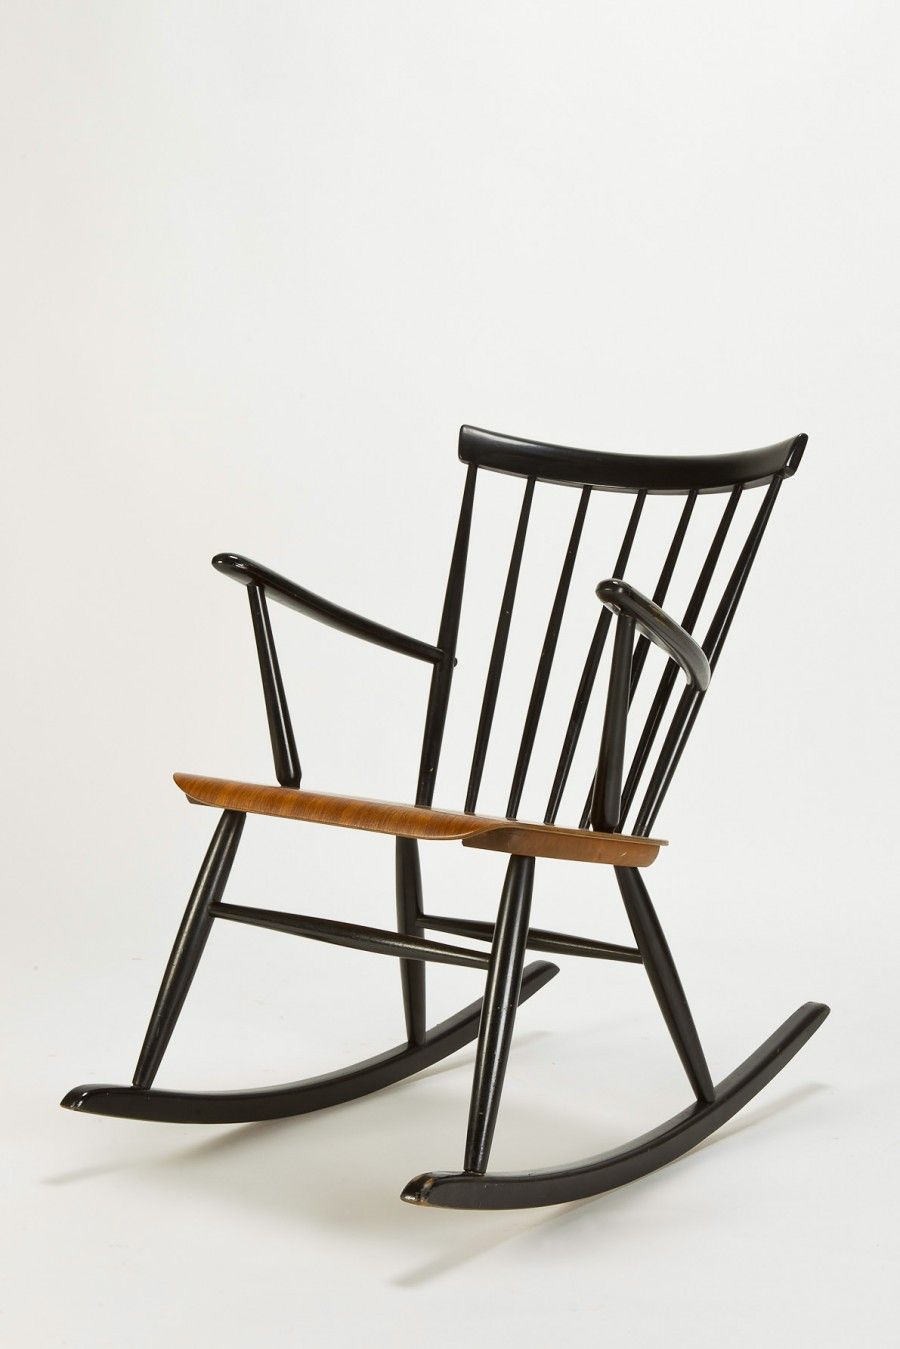 Roland Rainer Rocking Chair Rocking chair, Chair